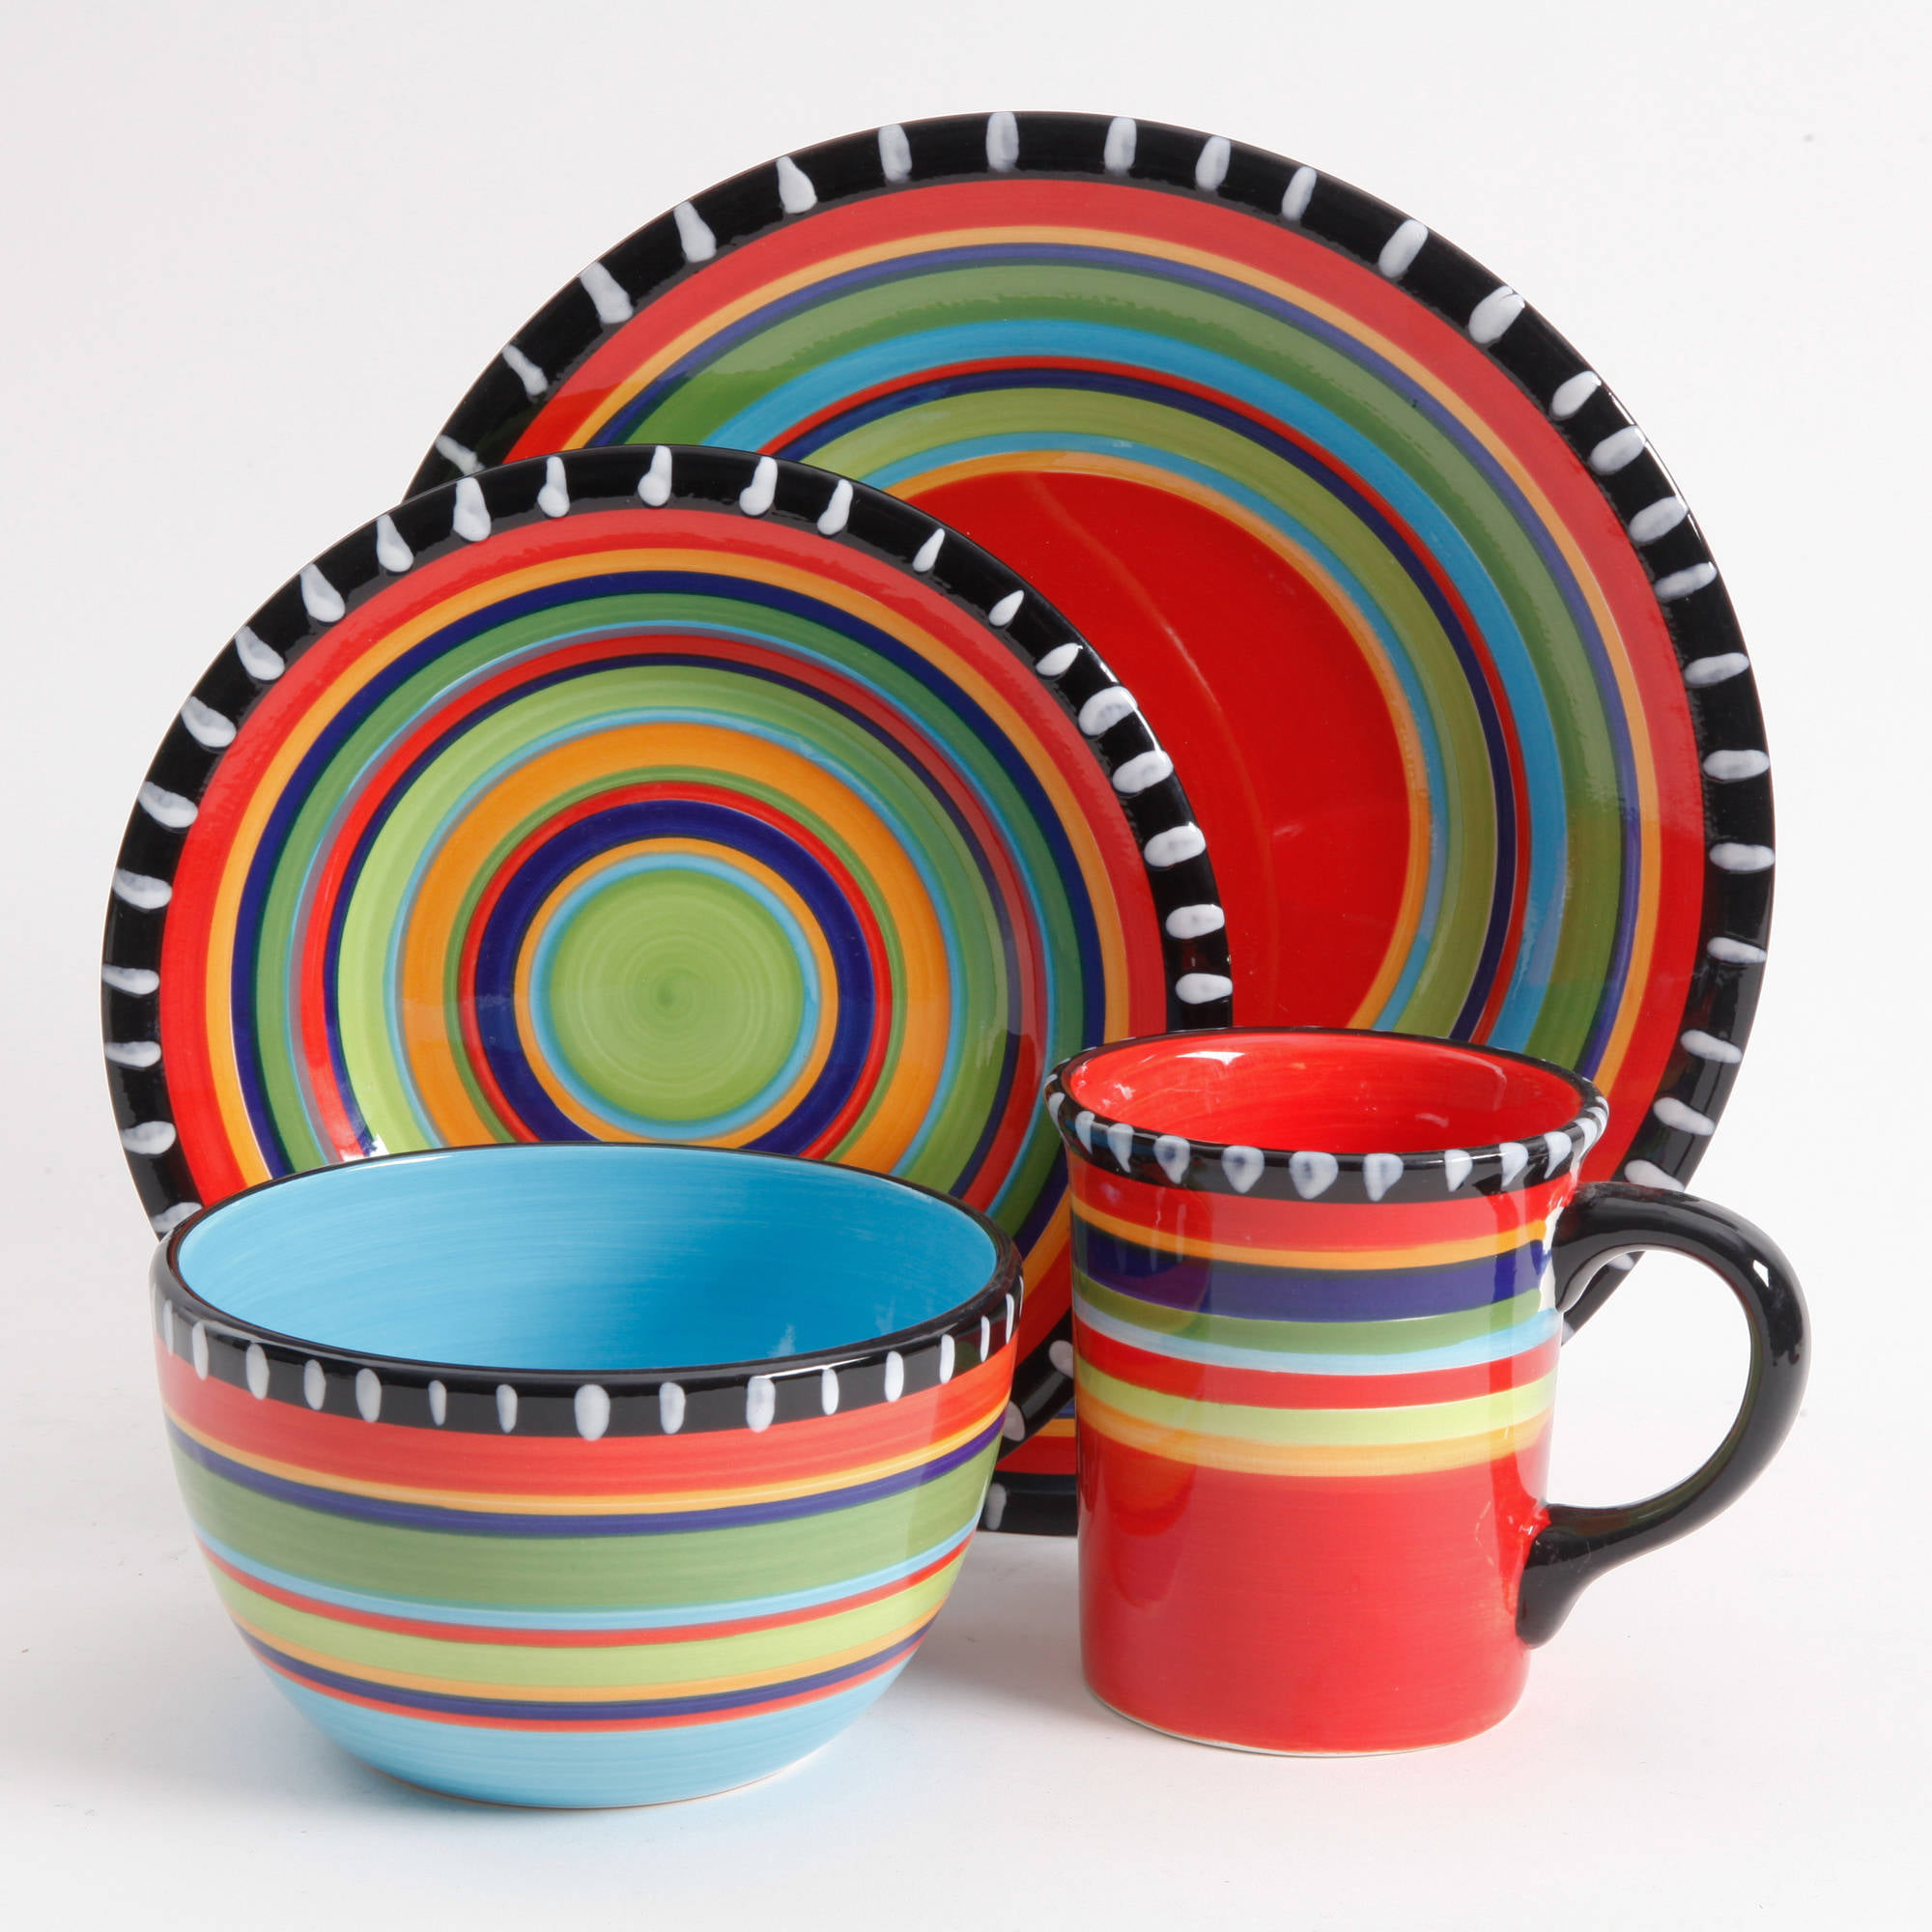 Gibson Home Pueblo Springs Handpainted 16-Piece Dinnerware Set Multi-Color - Walmart.com : multi colored dinner plates - pezcame.com